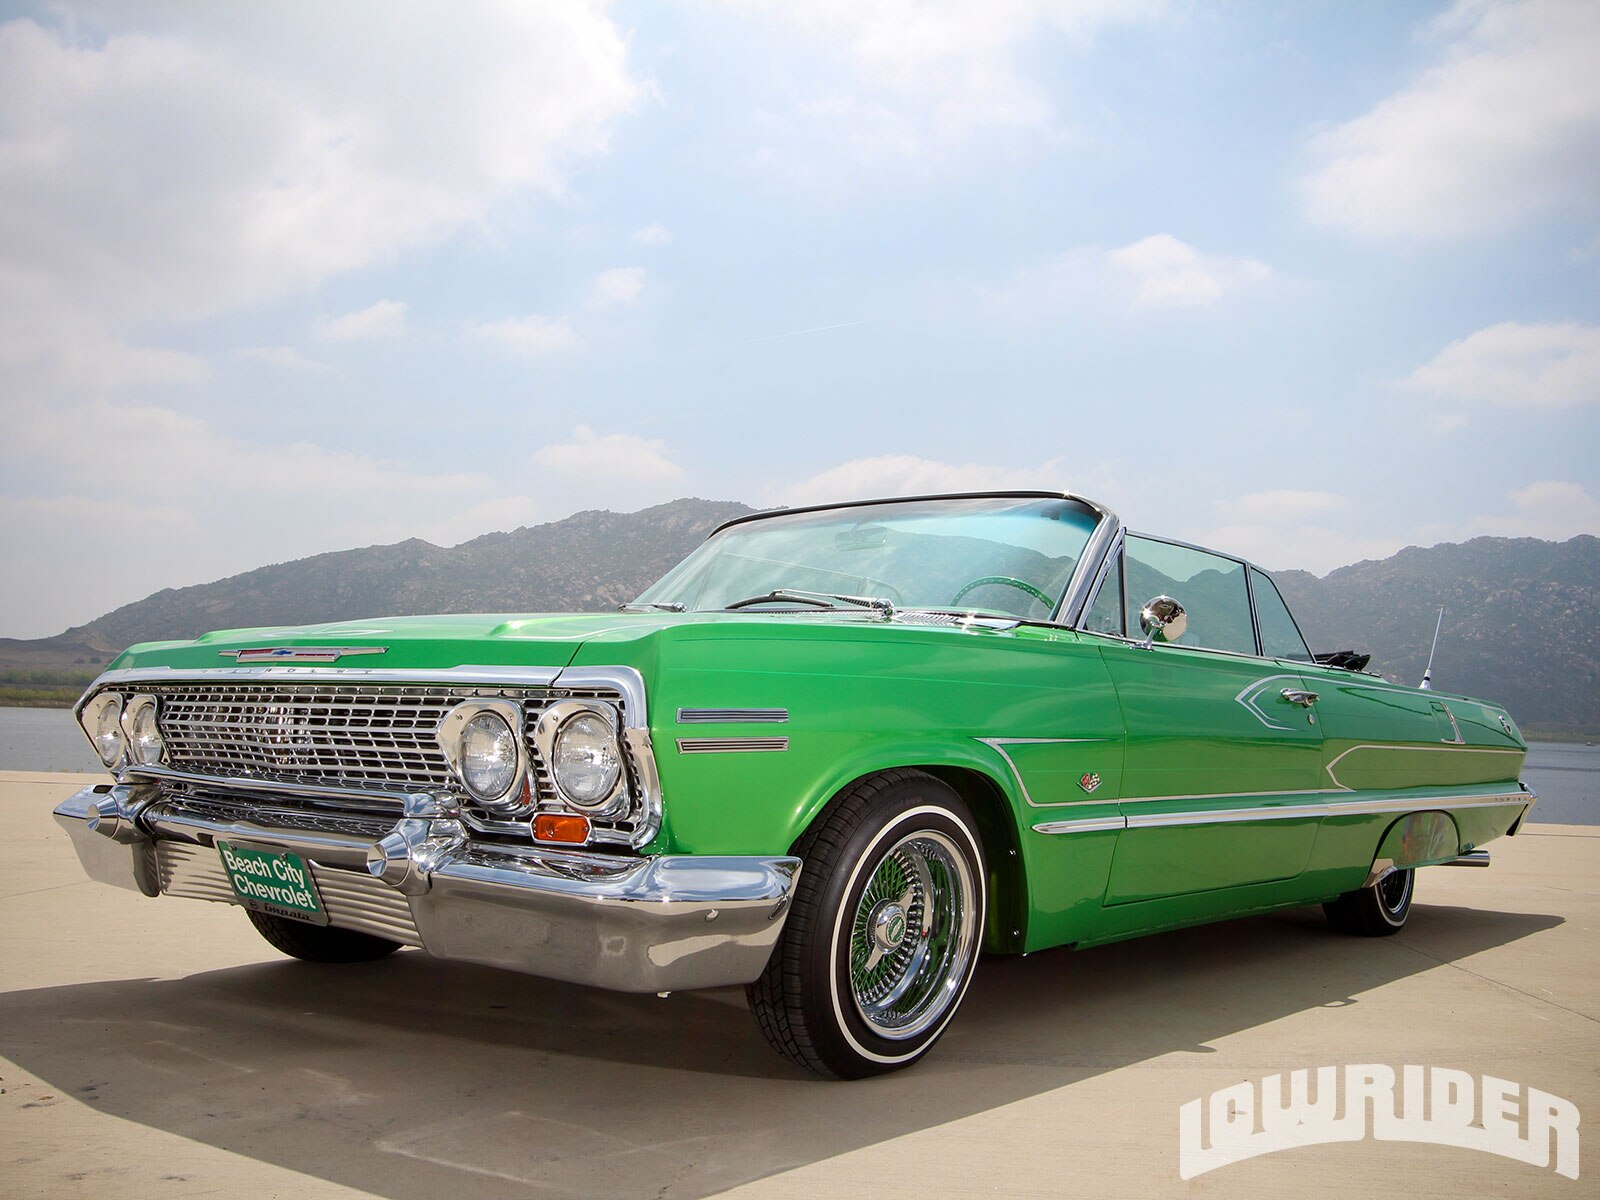 1963-chevrolet-impala-convertible-front-left-view-top-down2